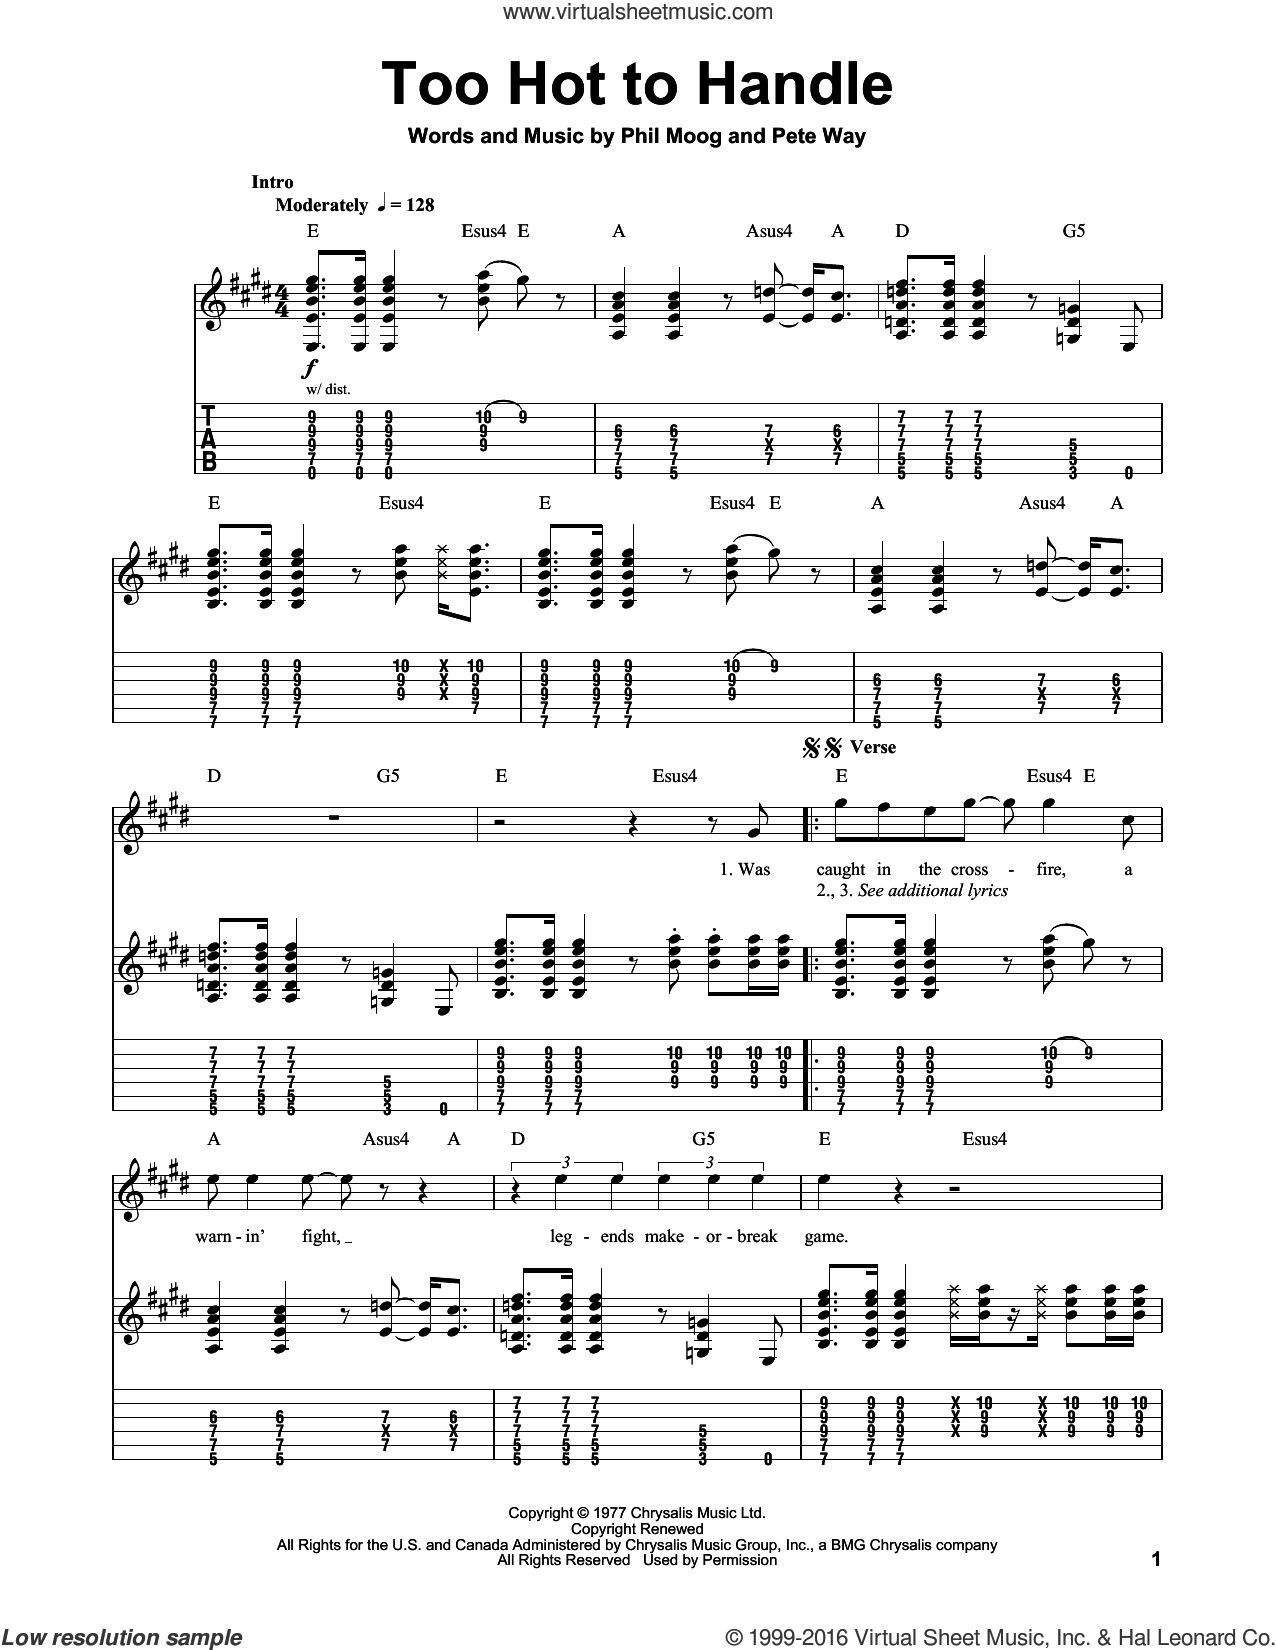 Too Hot To Handle sheet music for guitar (tablature, play-along) by UFO, Pete Way and Phil Moog, intermediate